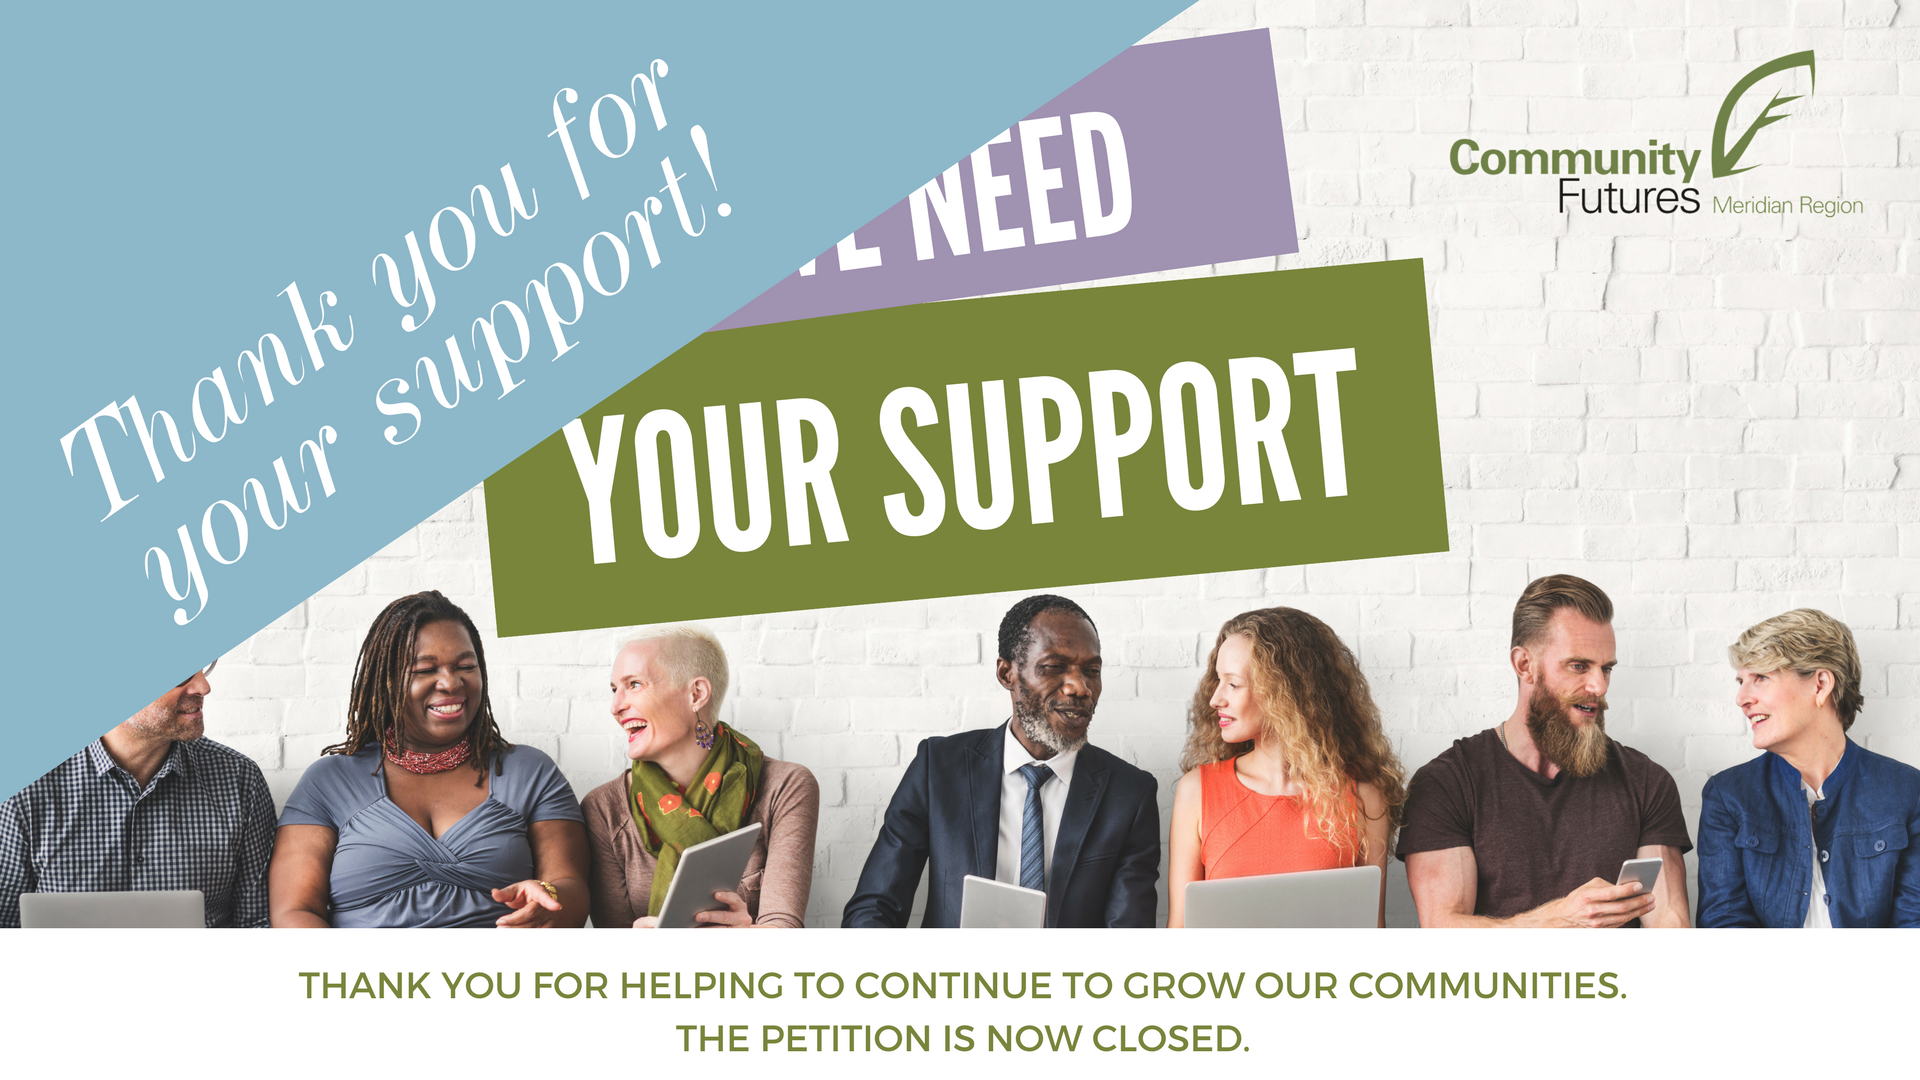 Help Community Futures continue To grow our communities. Click Here to add your name to the petition. 3